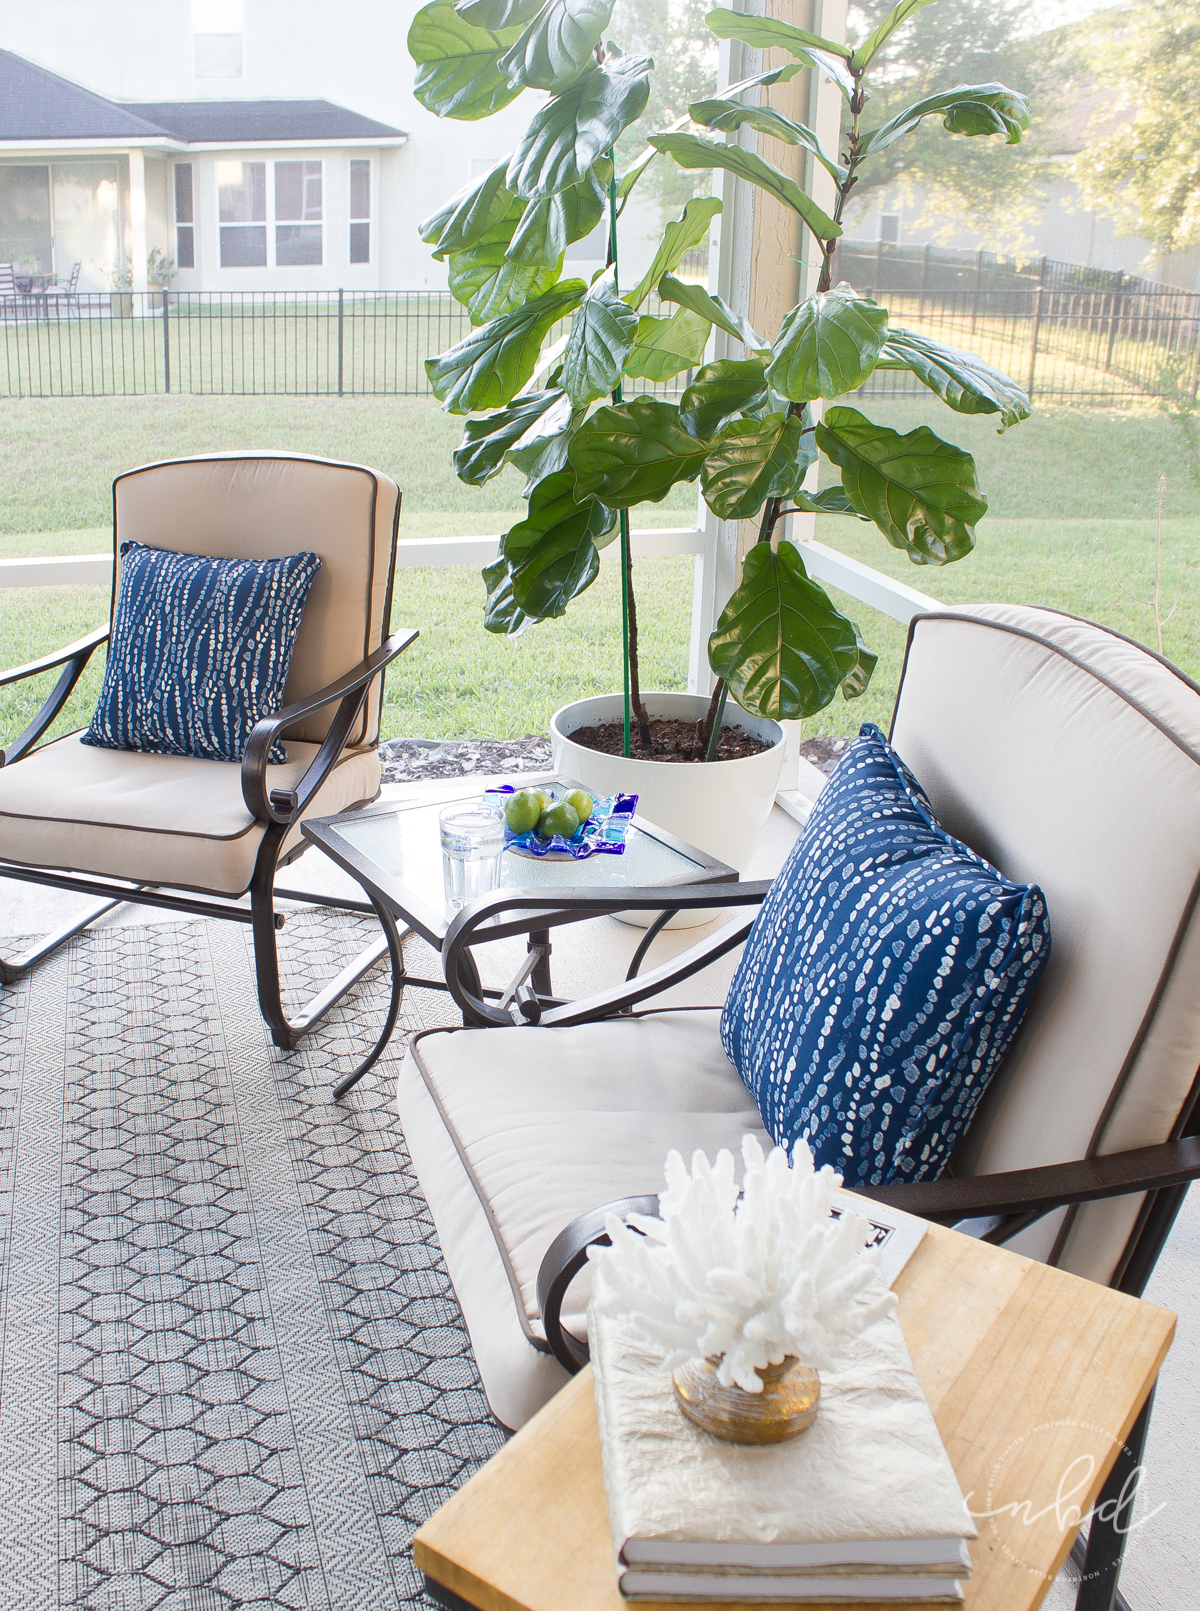 Lowe's #MyOutdoorOasis two chairs - Northern Belle Diaries